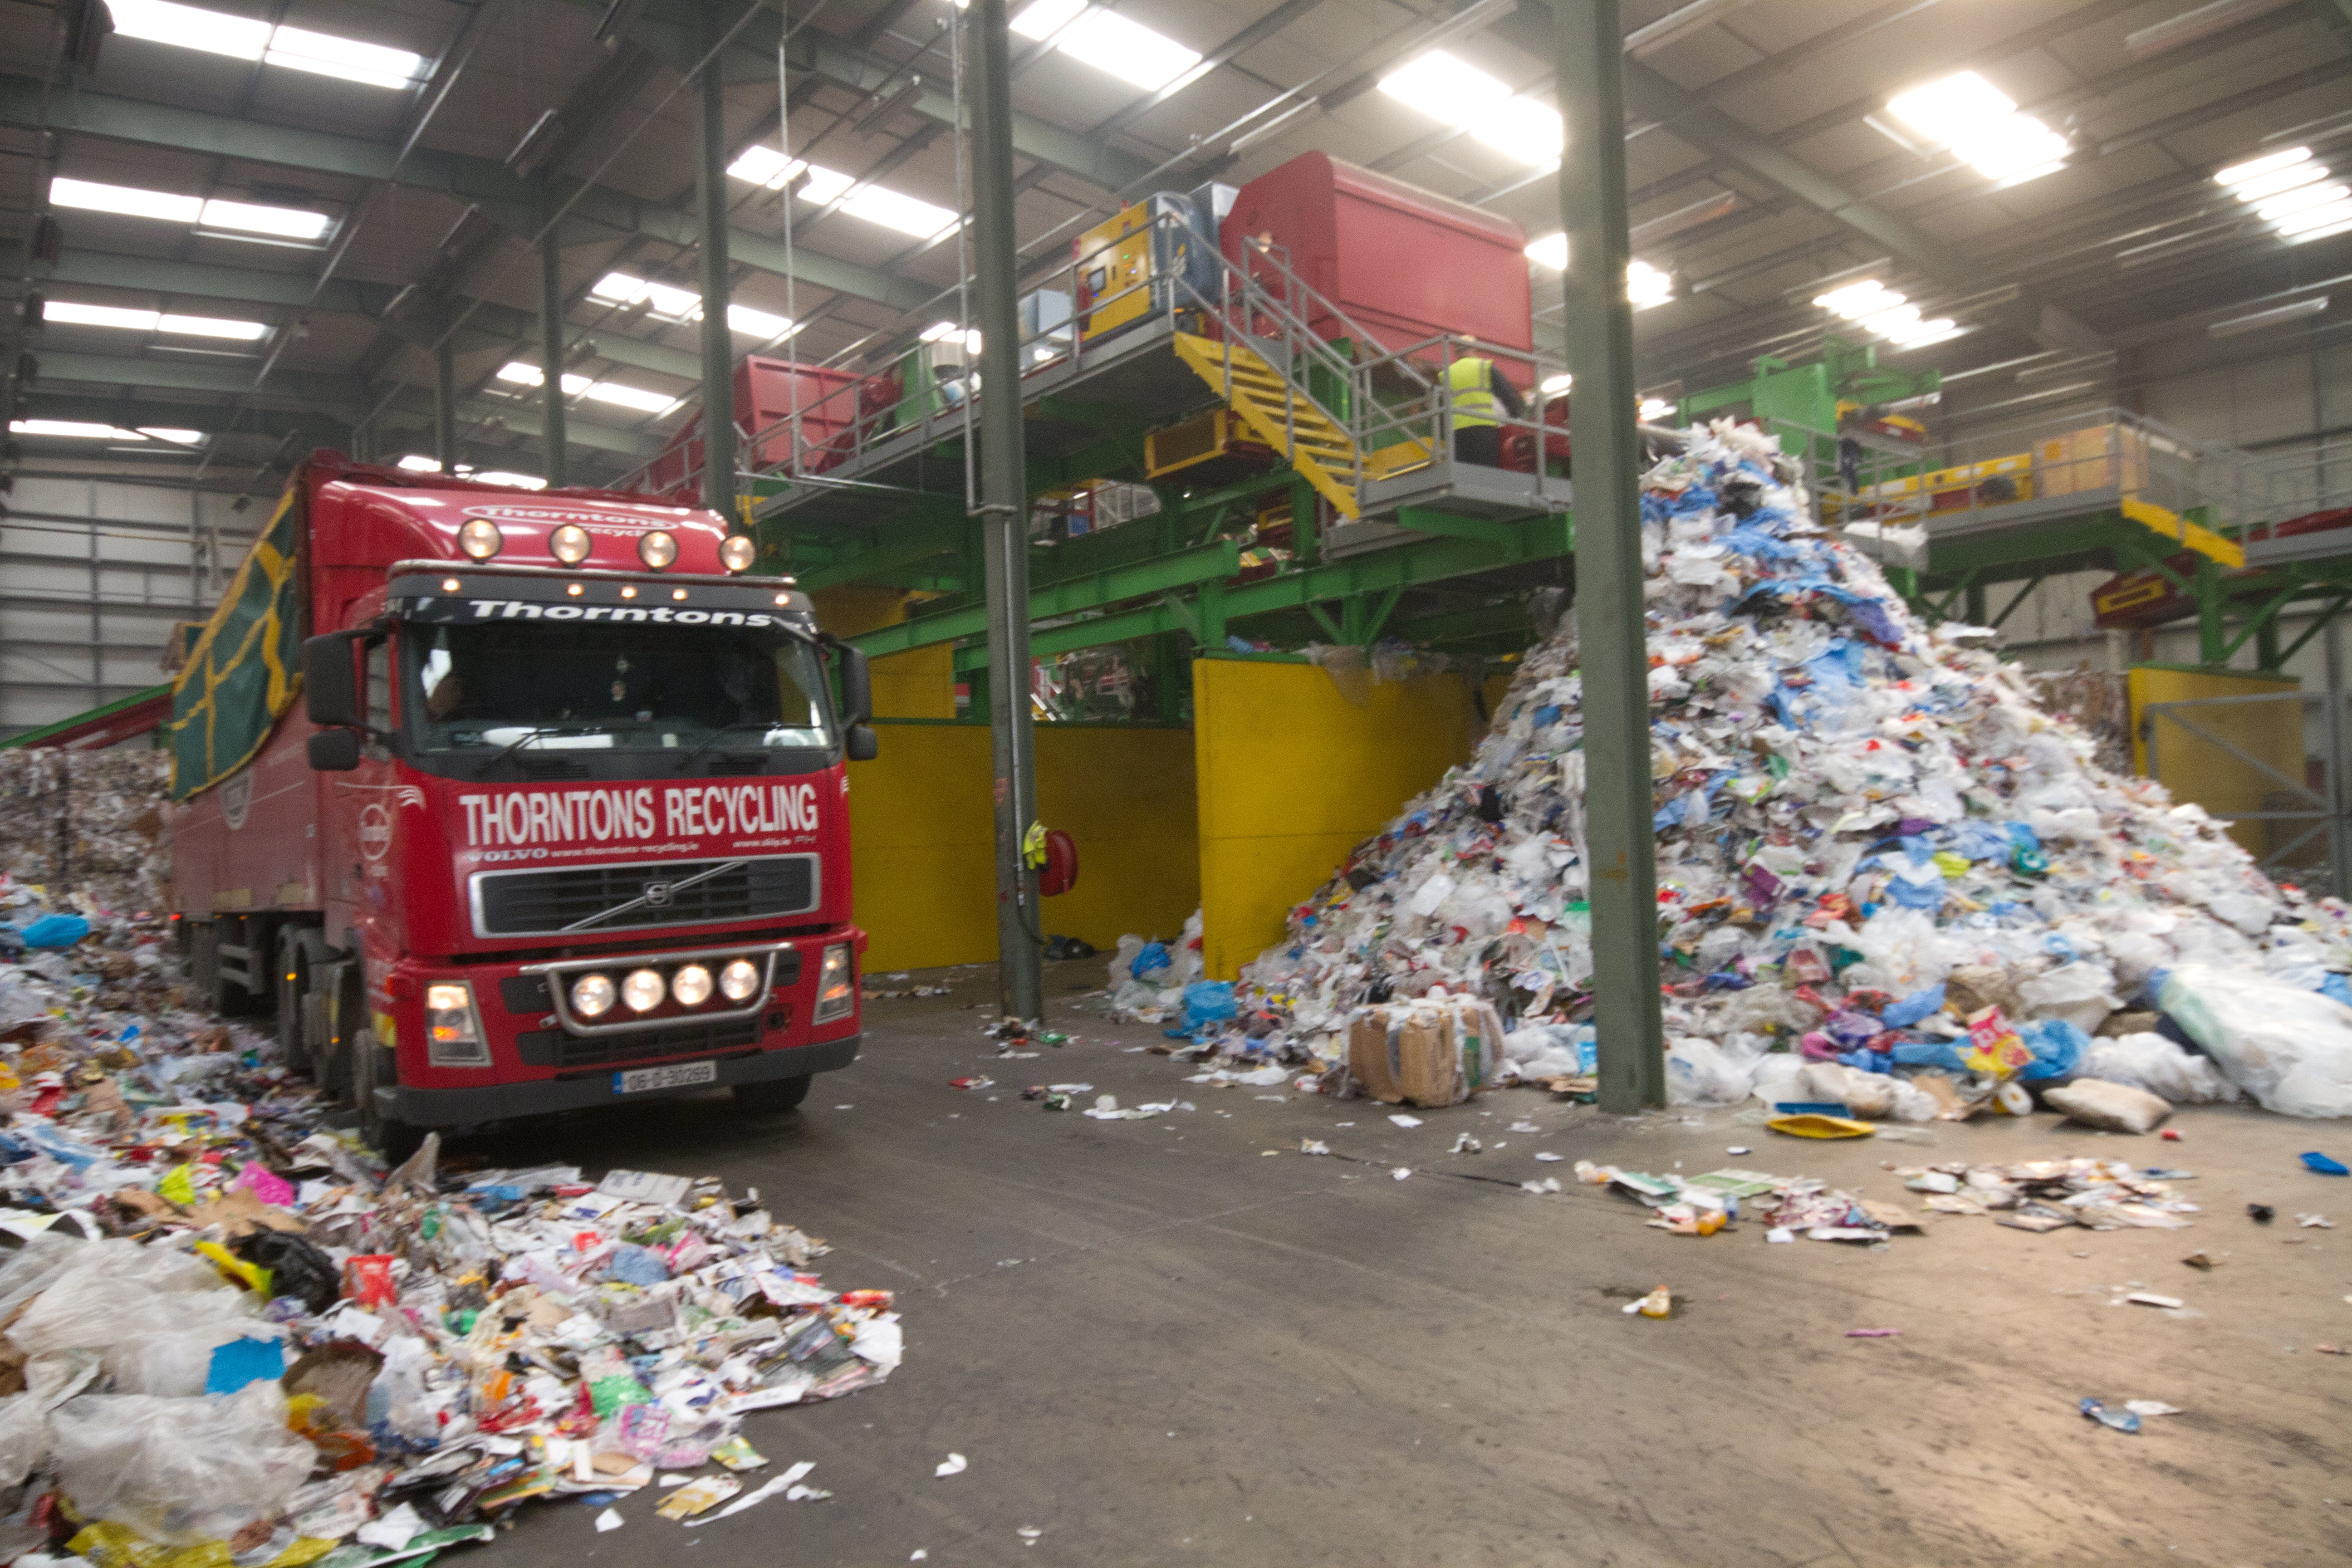 Thornton Recycling's mixed dry recycling facility plant upgrade